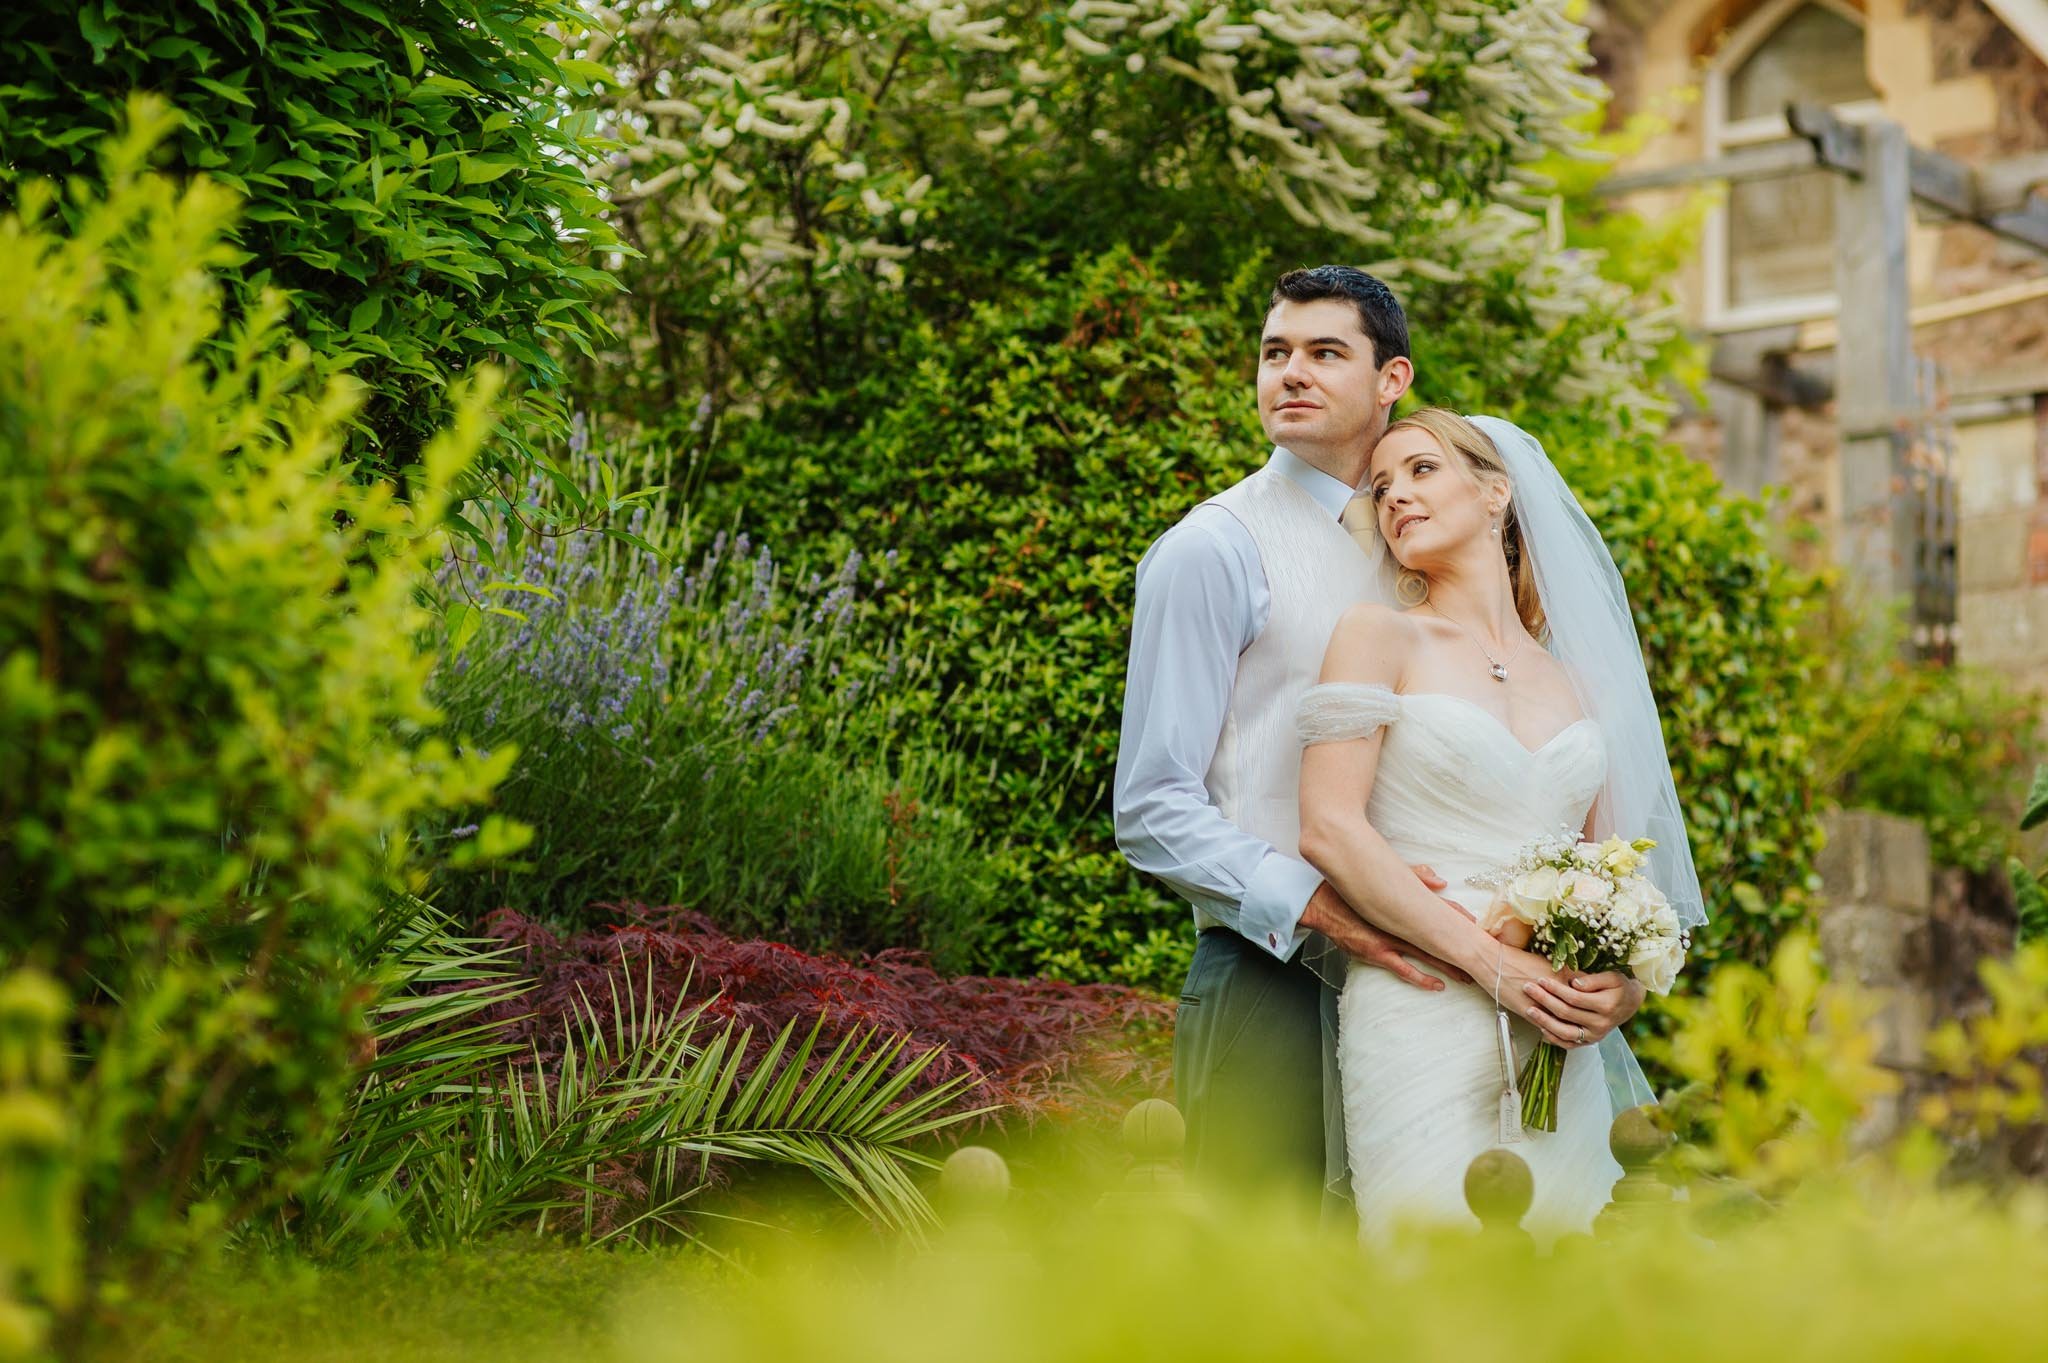 Georgina + Mike - Wedding photography in Malvern, Worcestershire 75